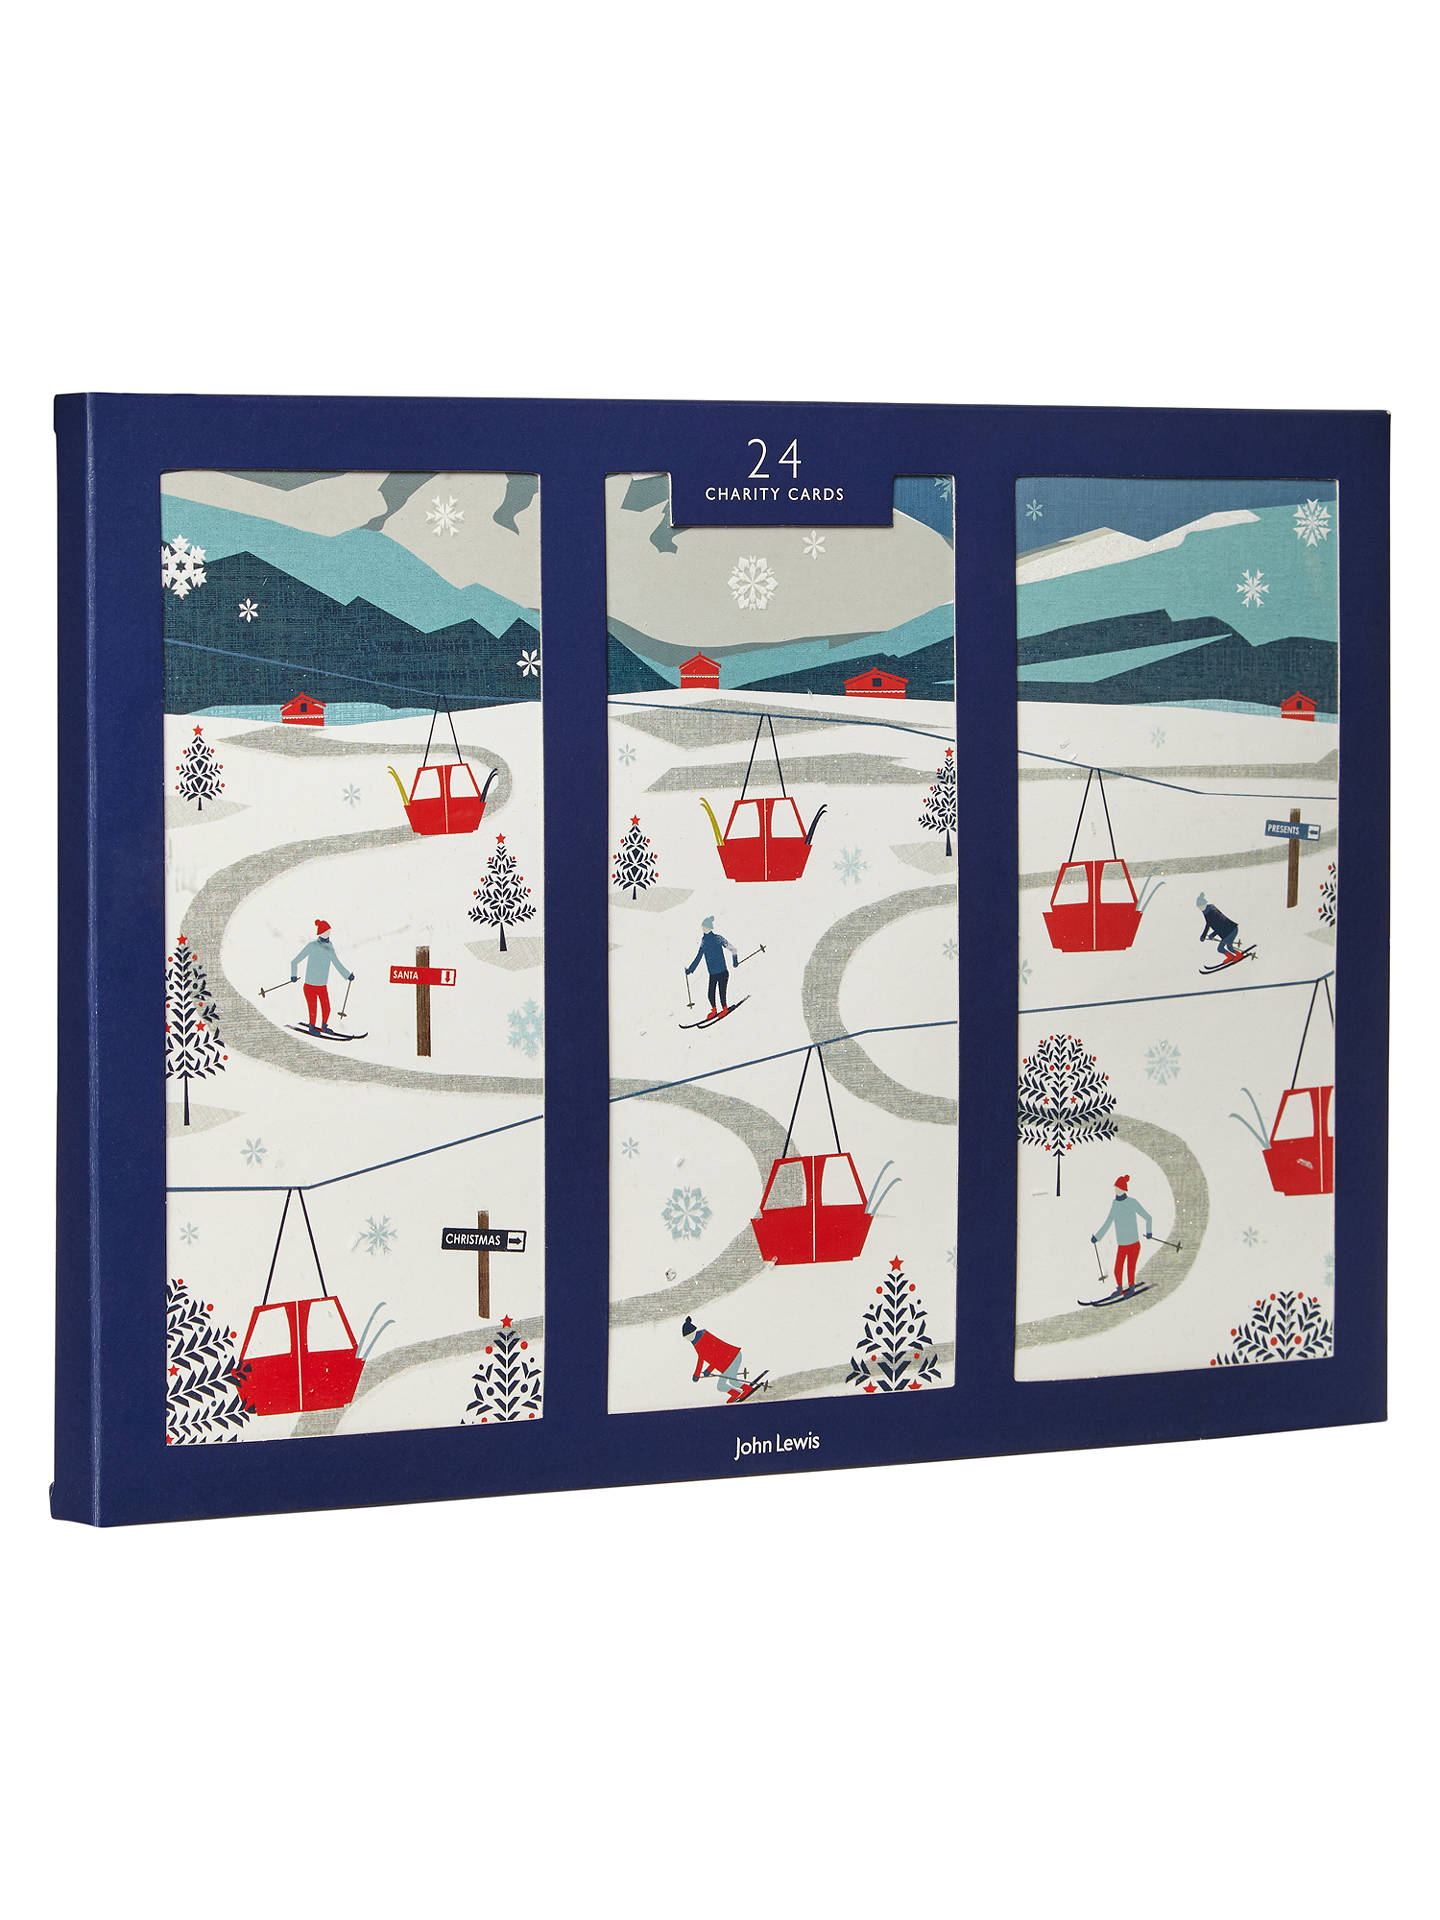 John Lewis Chamonix Ski Scene Charity Christmas Cards, Pack of 24 at ...